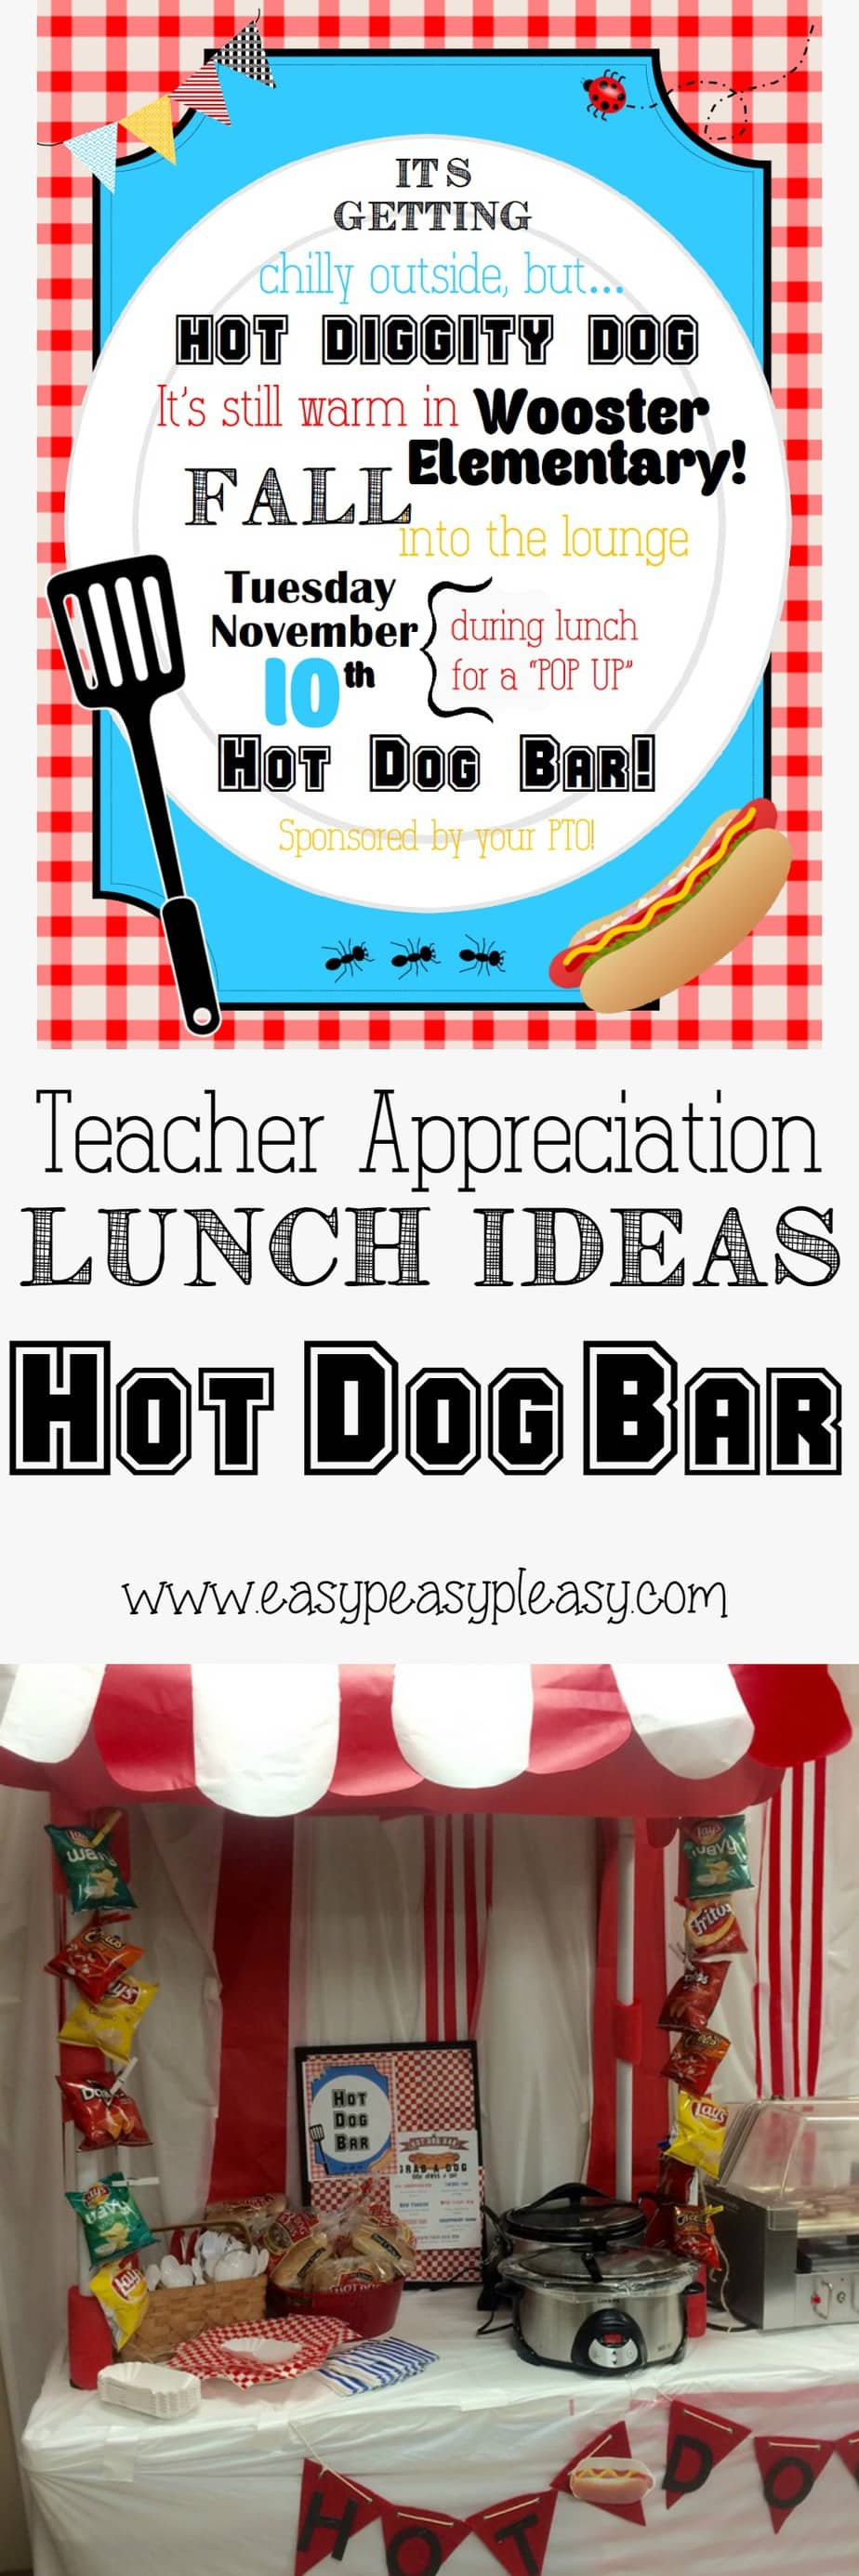 Teacher Appreciation Lunch Ideas Hot Dog Bar! Free blank flyer that you can customize!